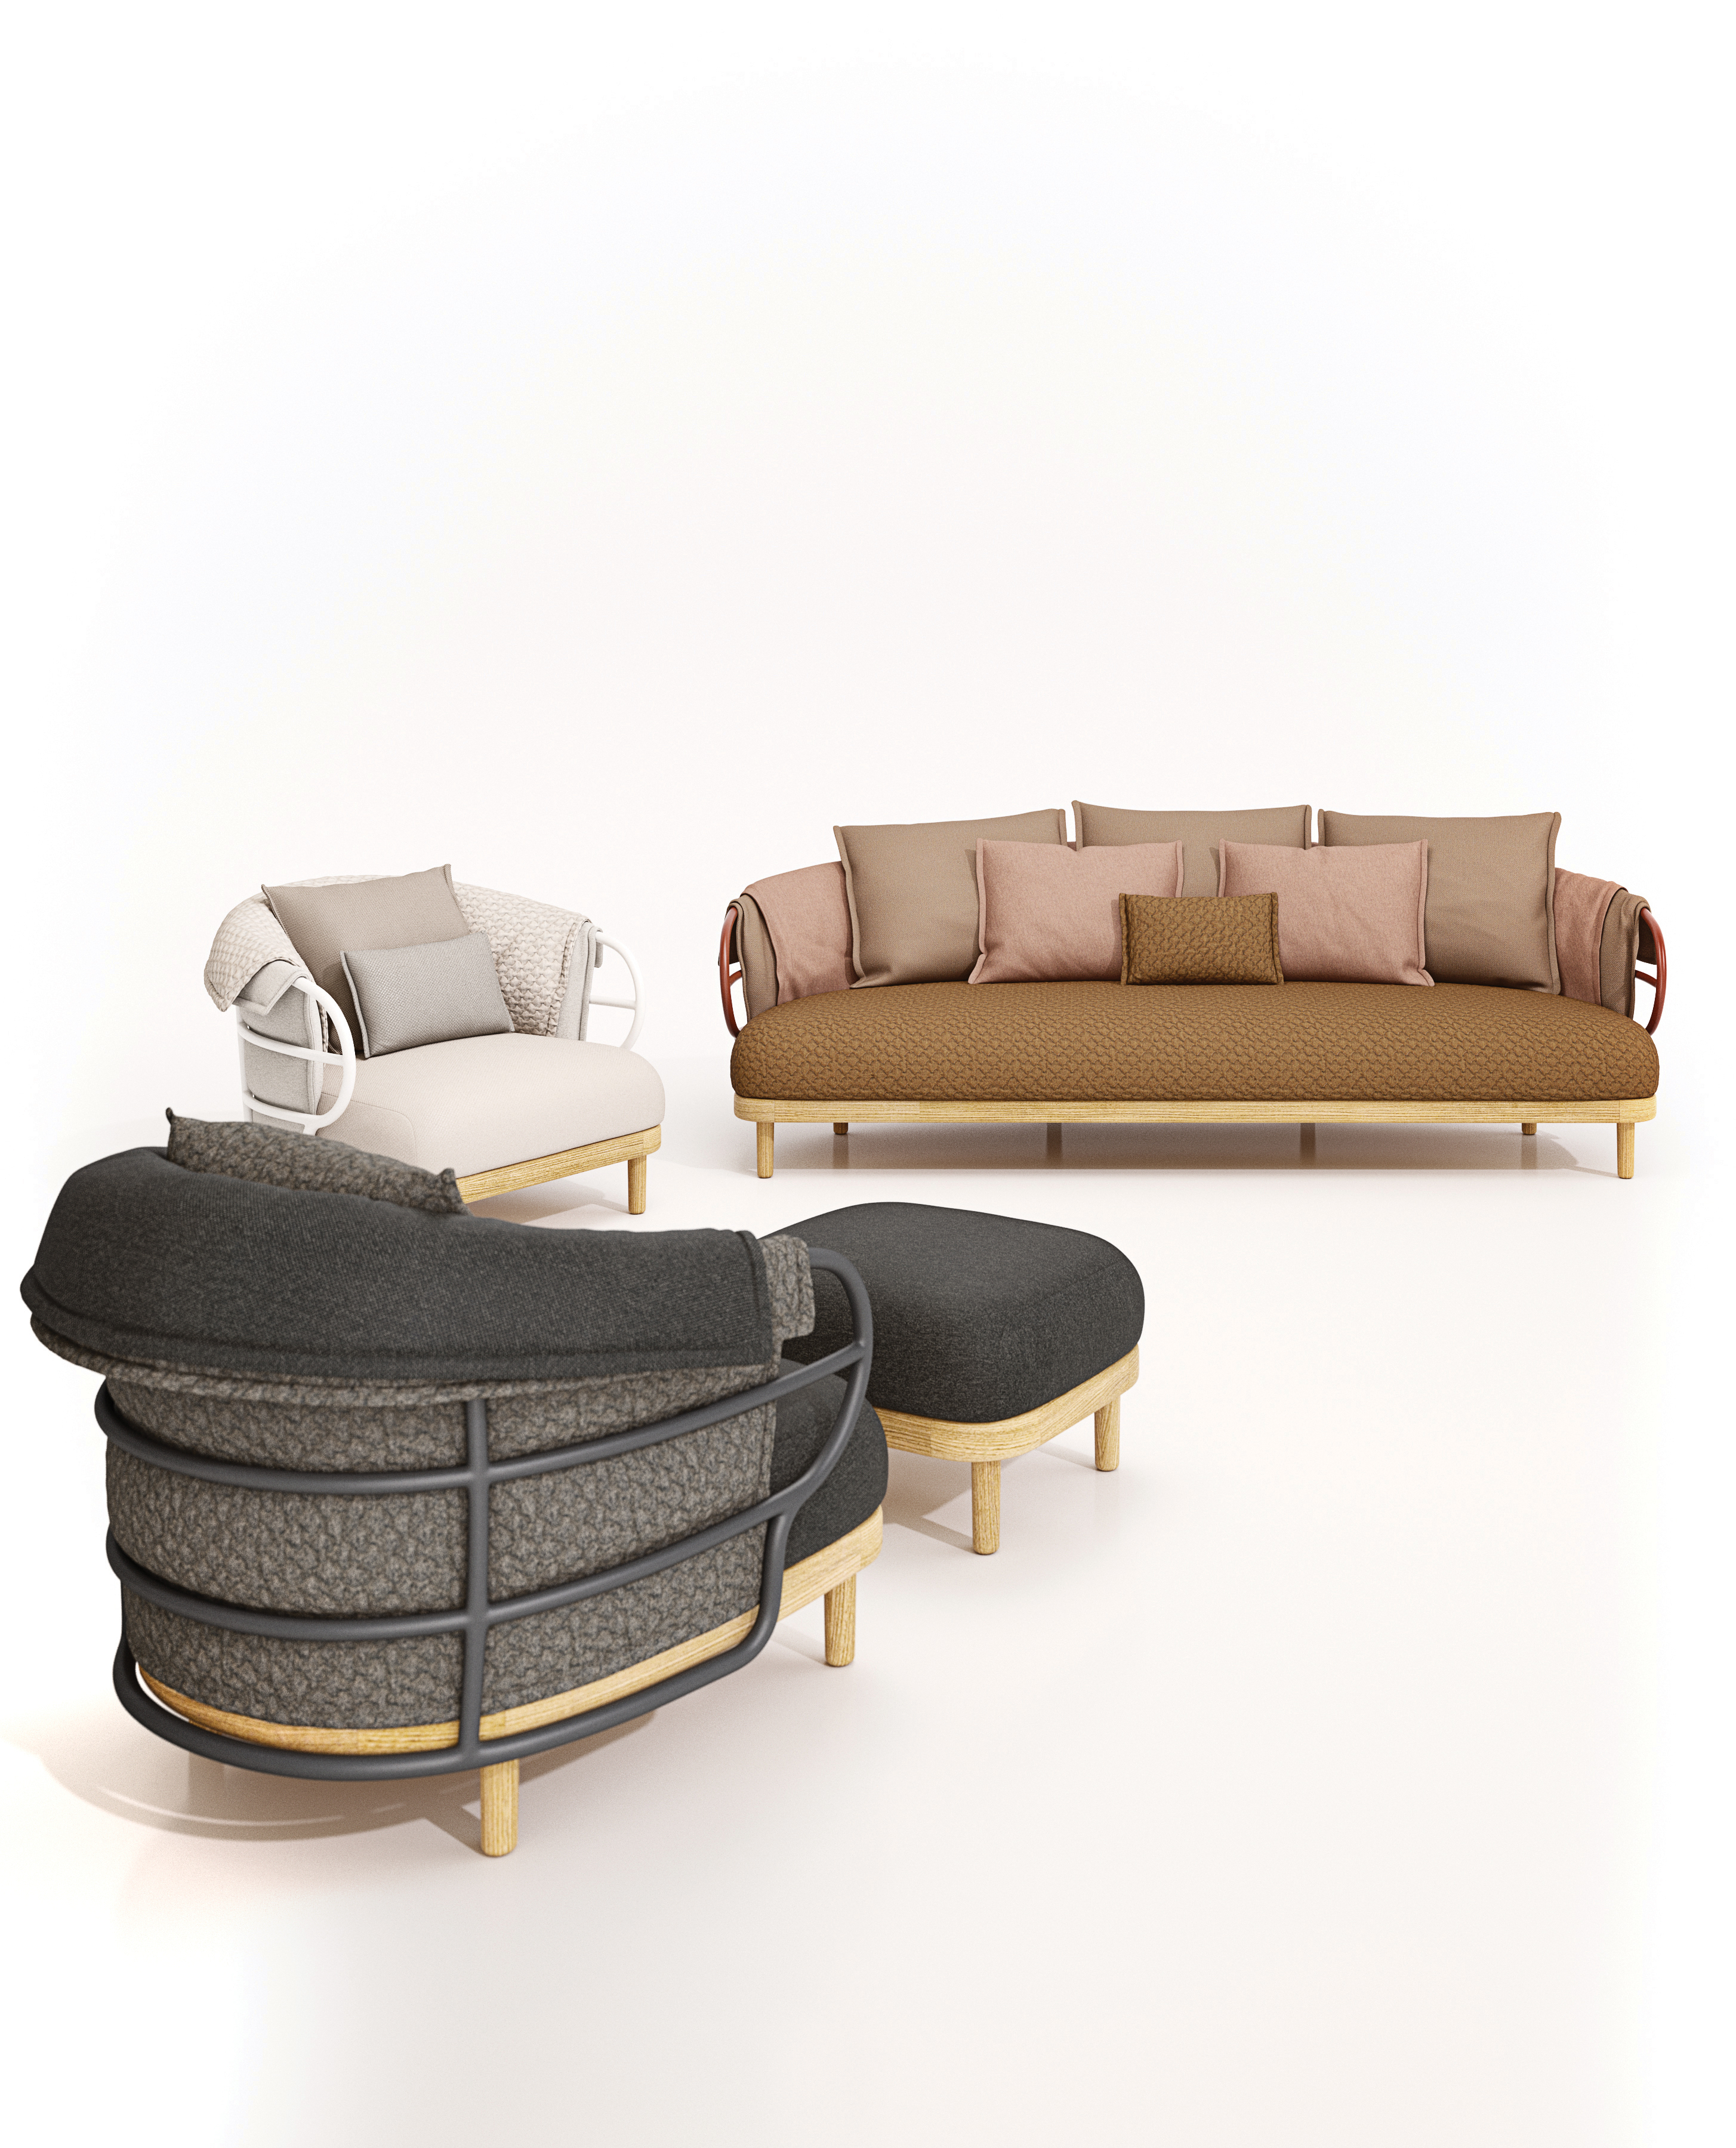 dune sofa designer covers online india by gloster furniture stylepark